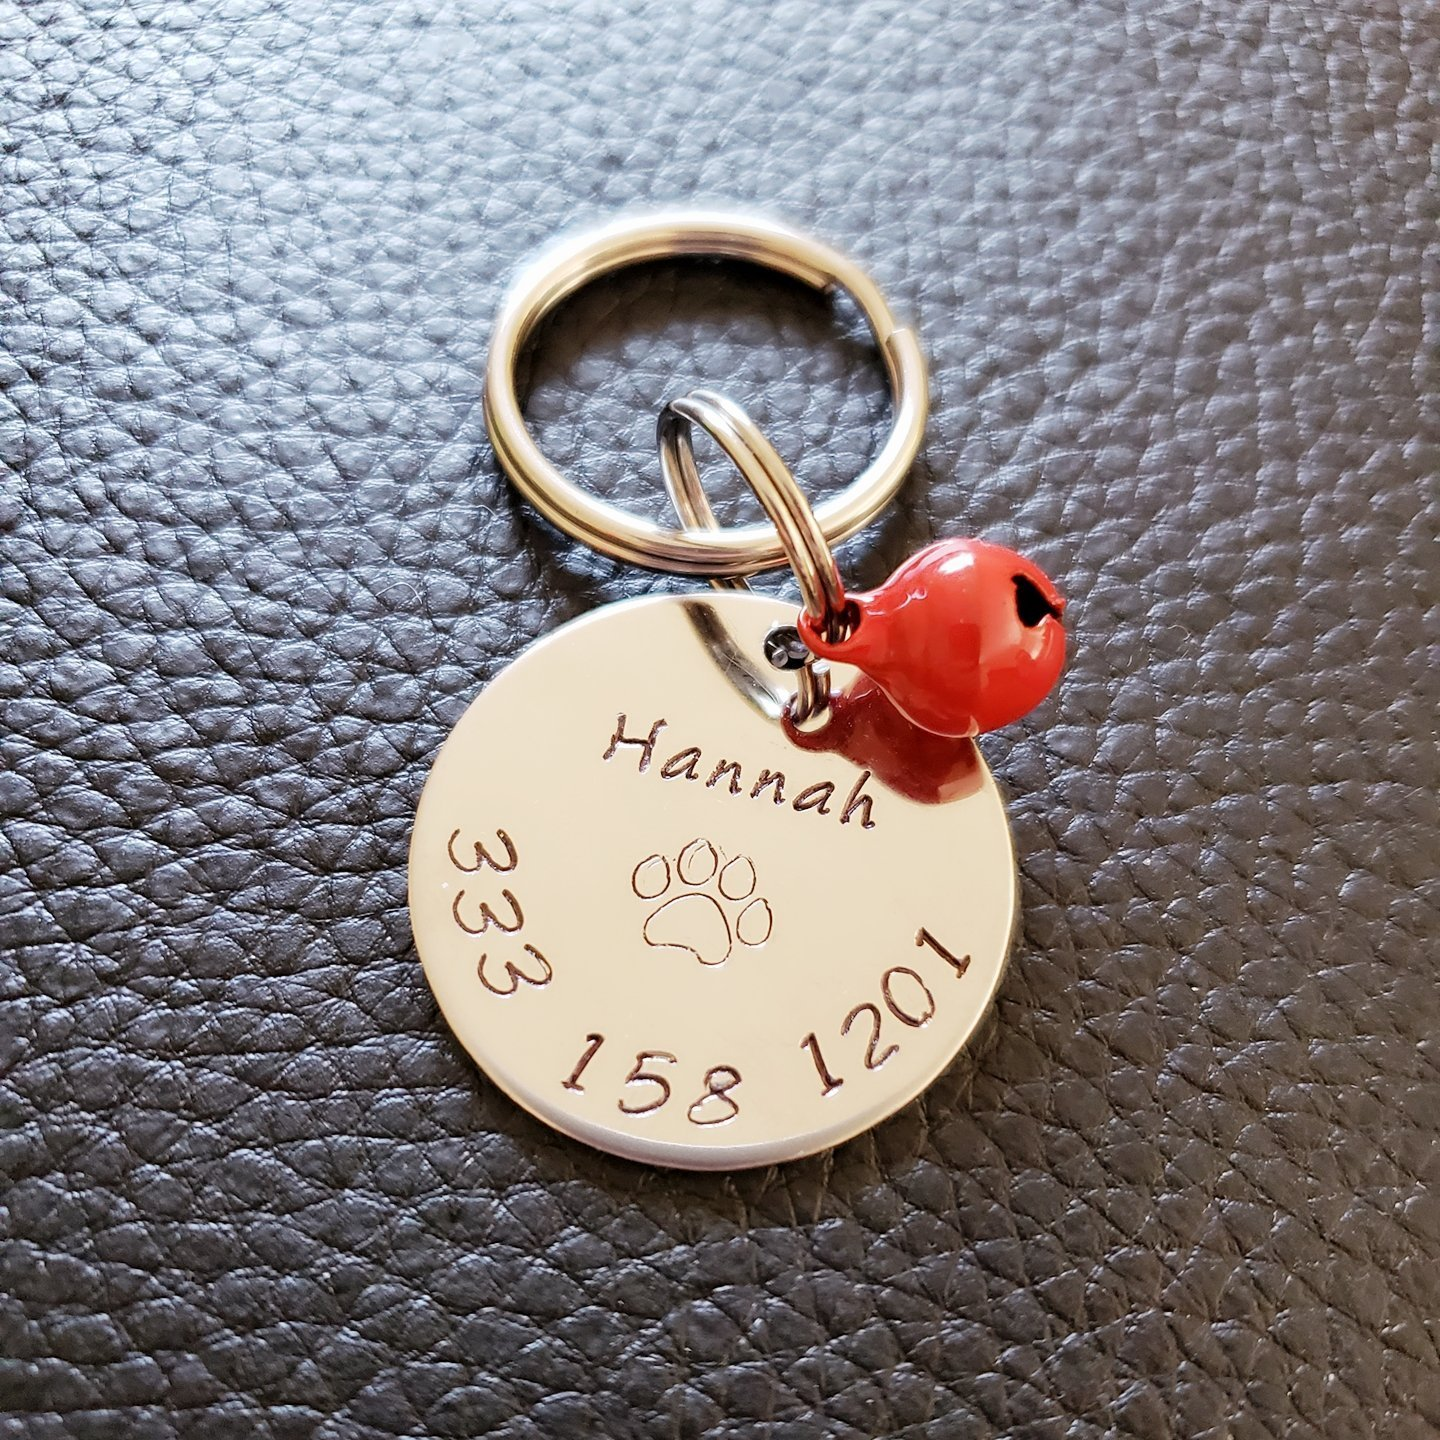 Personalized Dog Tag Dog Name Collar Tag Pet ID Collar Tag Stainless Steel Disc Dog Tag with Bell